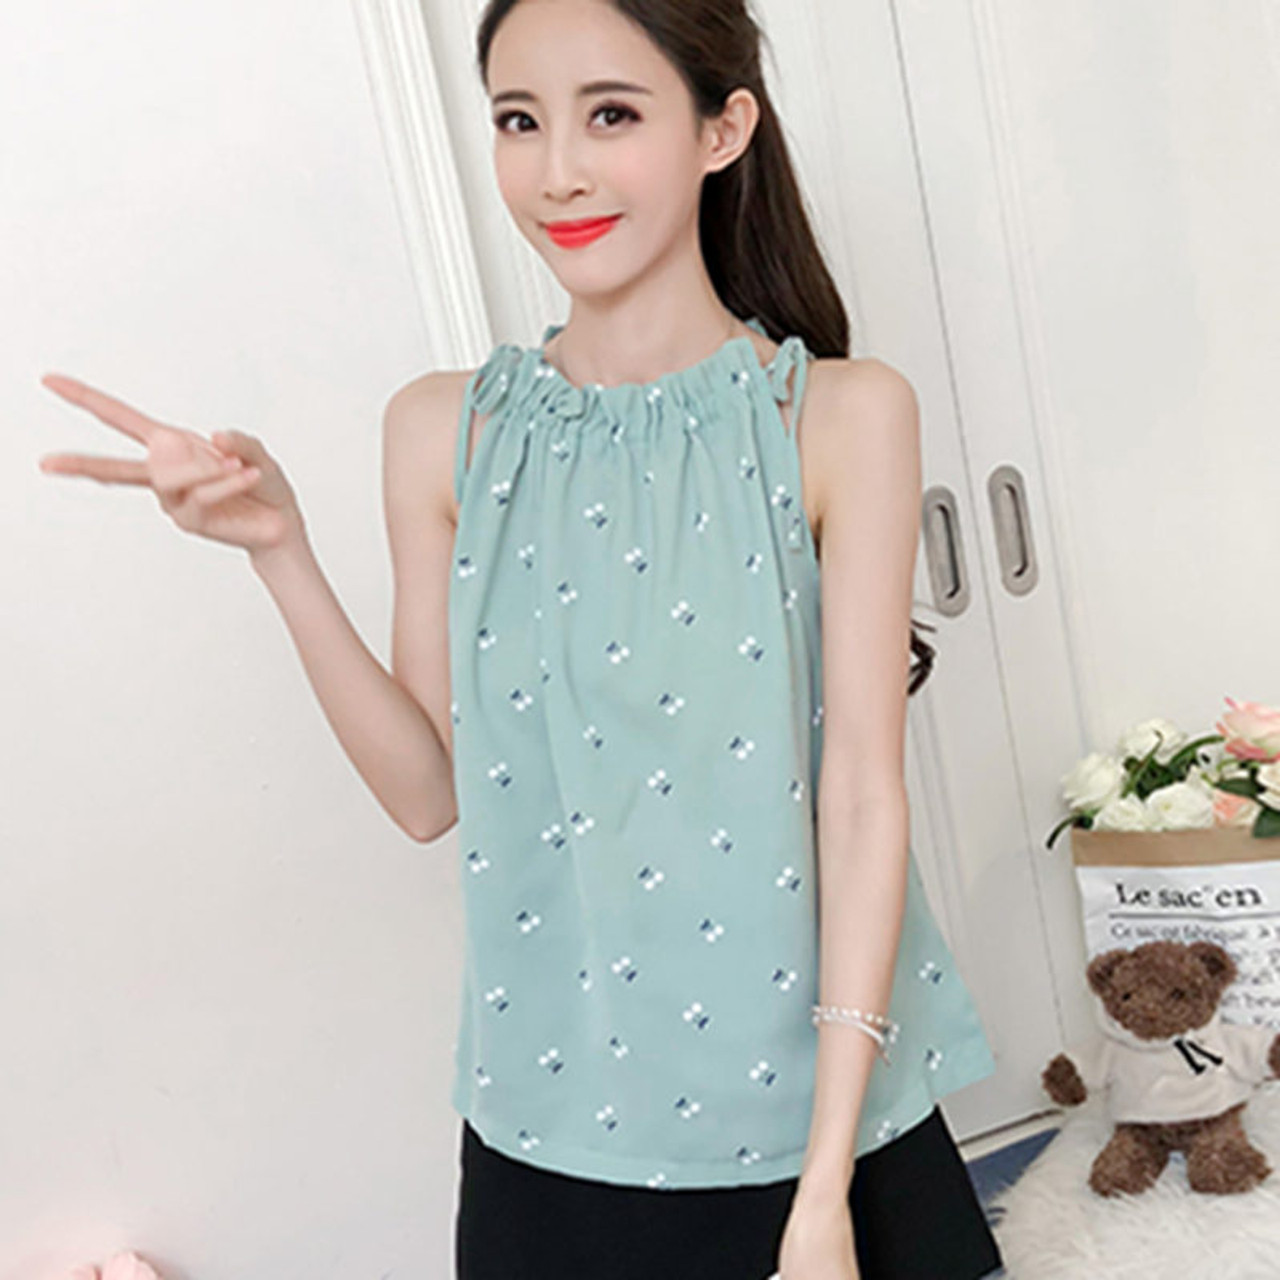 5da30a0bd2c41 ... Women Blouses 2018 Fashion Elegant Print Chiffon Blouse Sleeveless Shirts  Casual summer Top Ladies Clothing Blusa ...